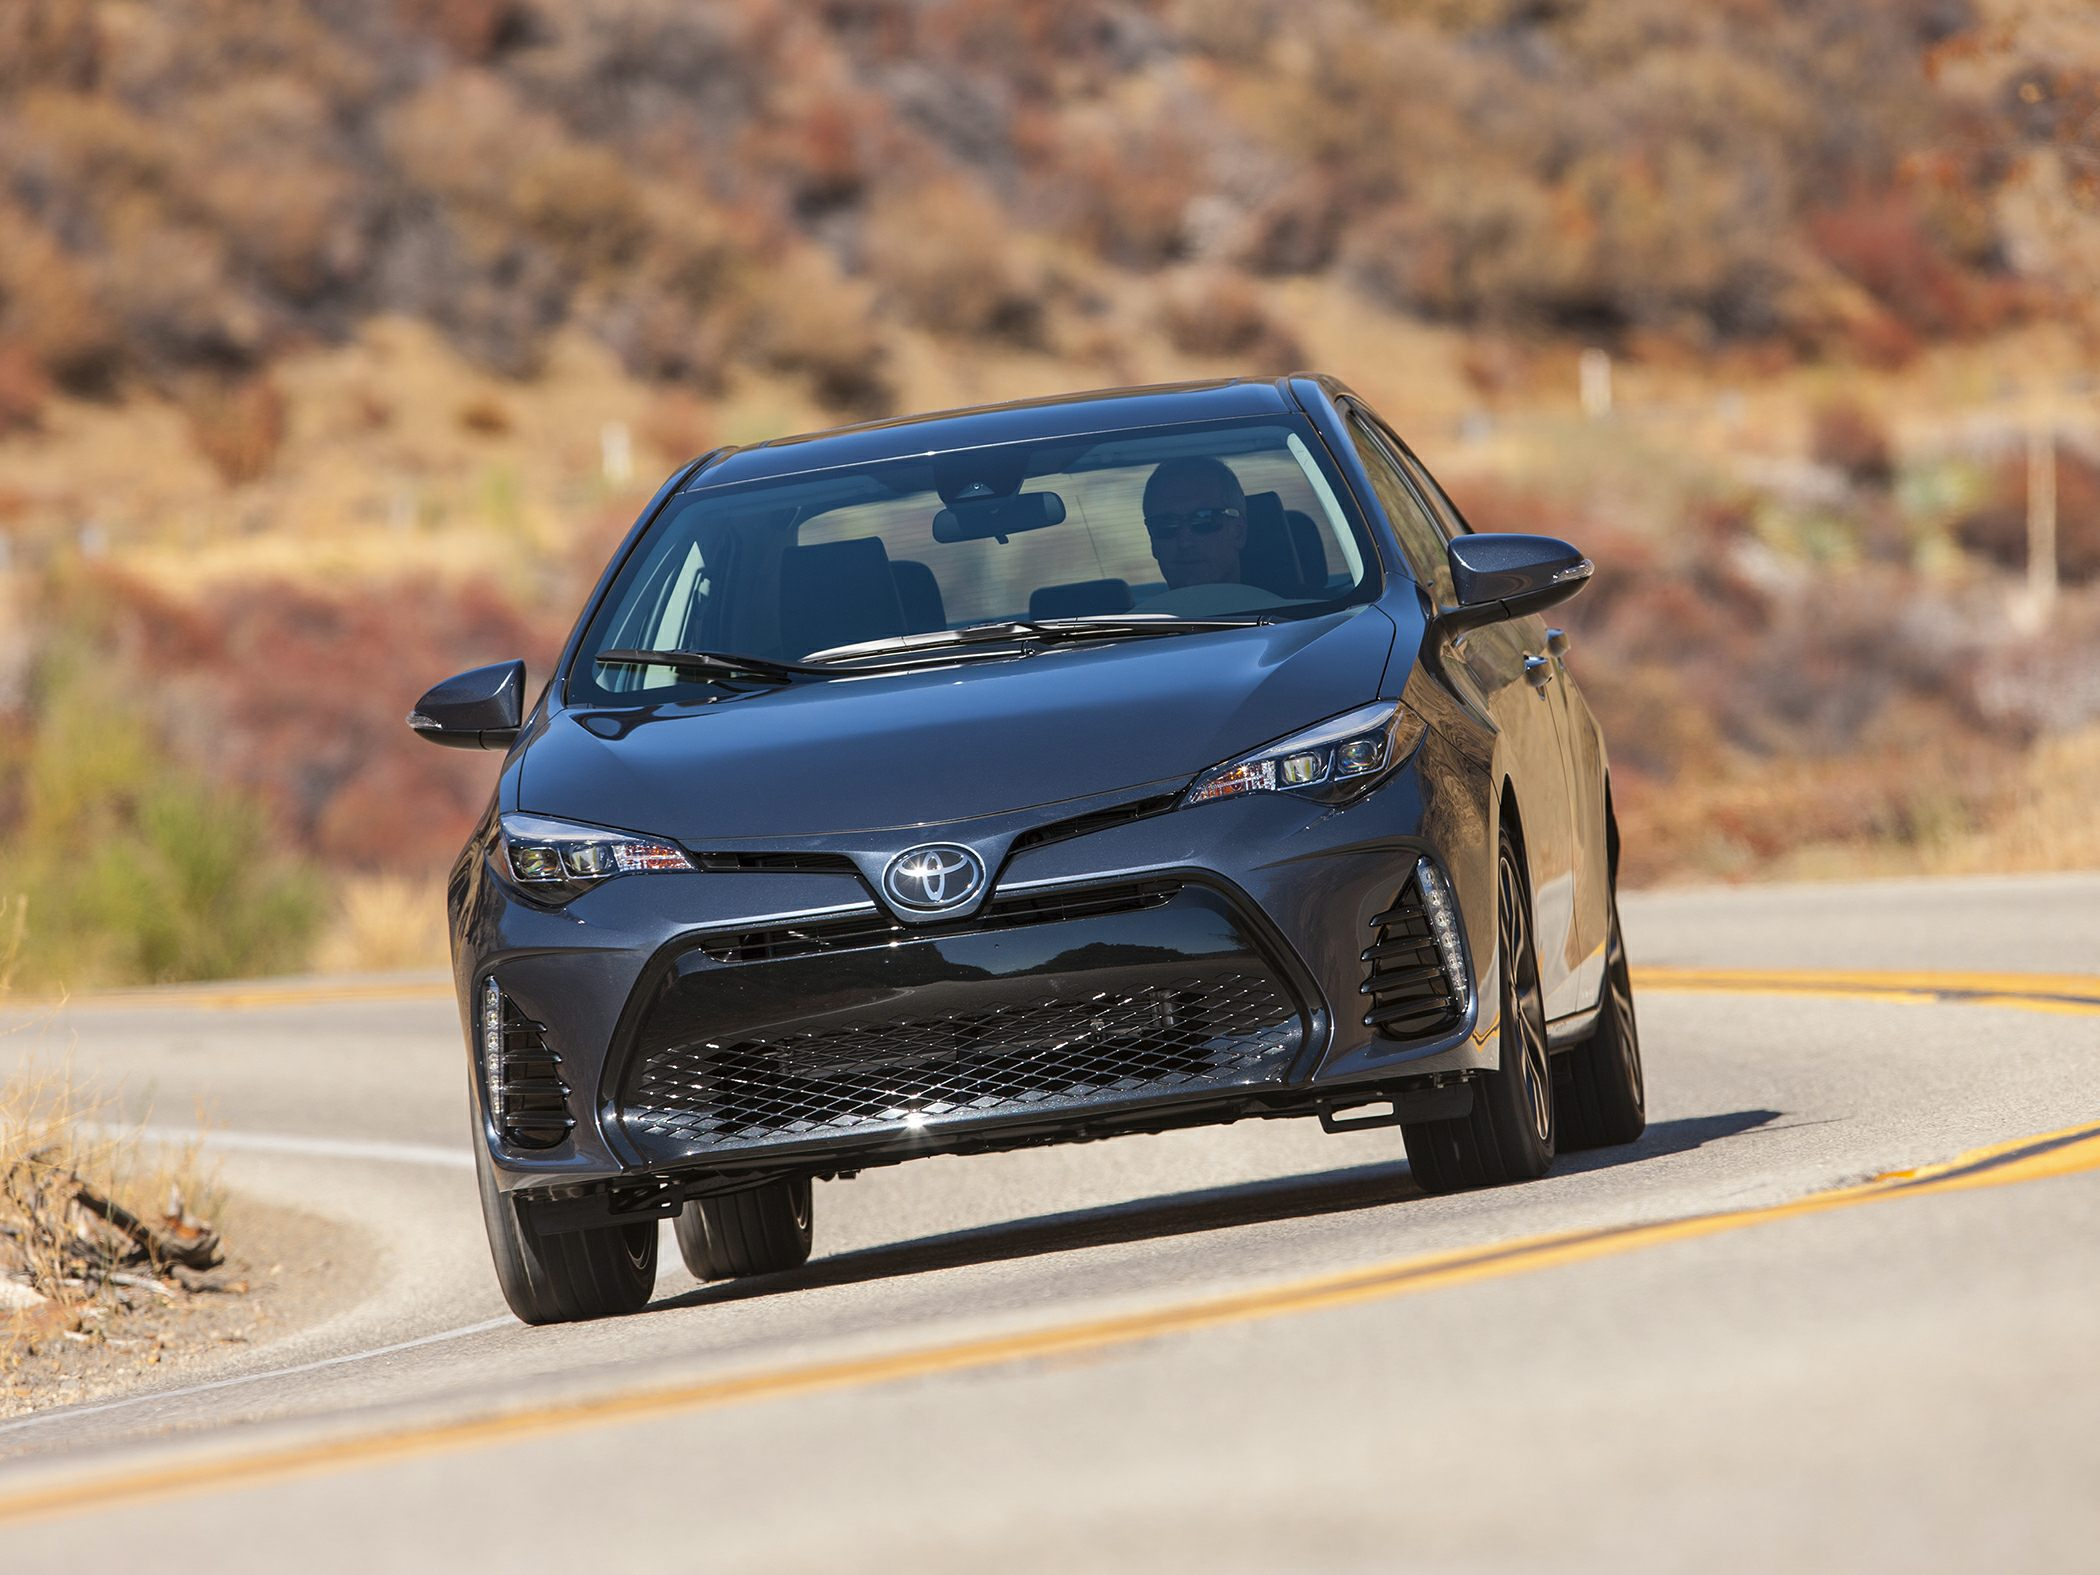 2018 toyota corolla deals prices incentives leases overview carsdirect. Black Bedroom Furniture Sets. Home Design Ideas